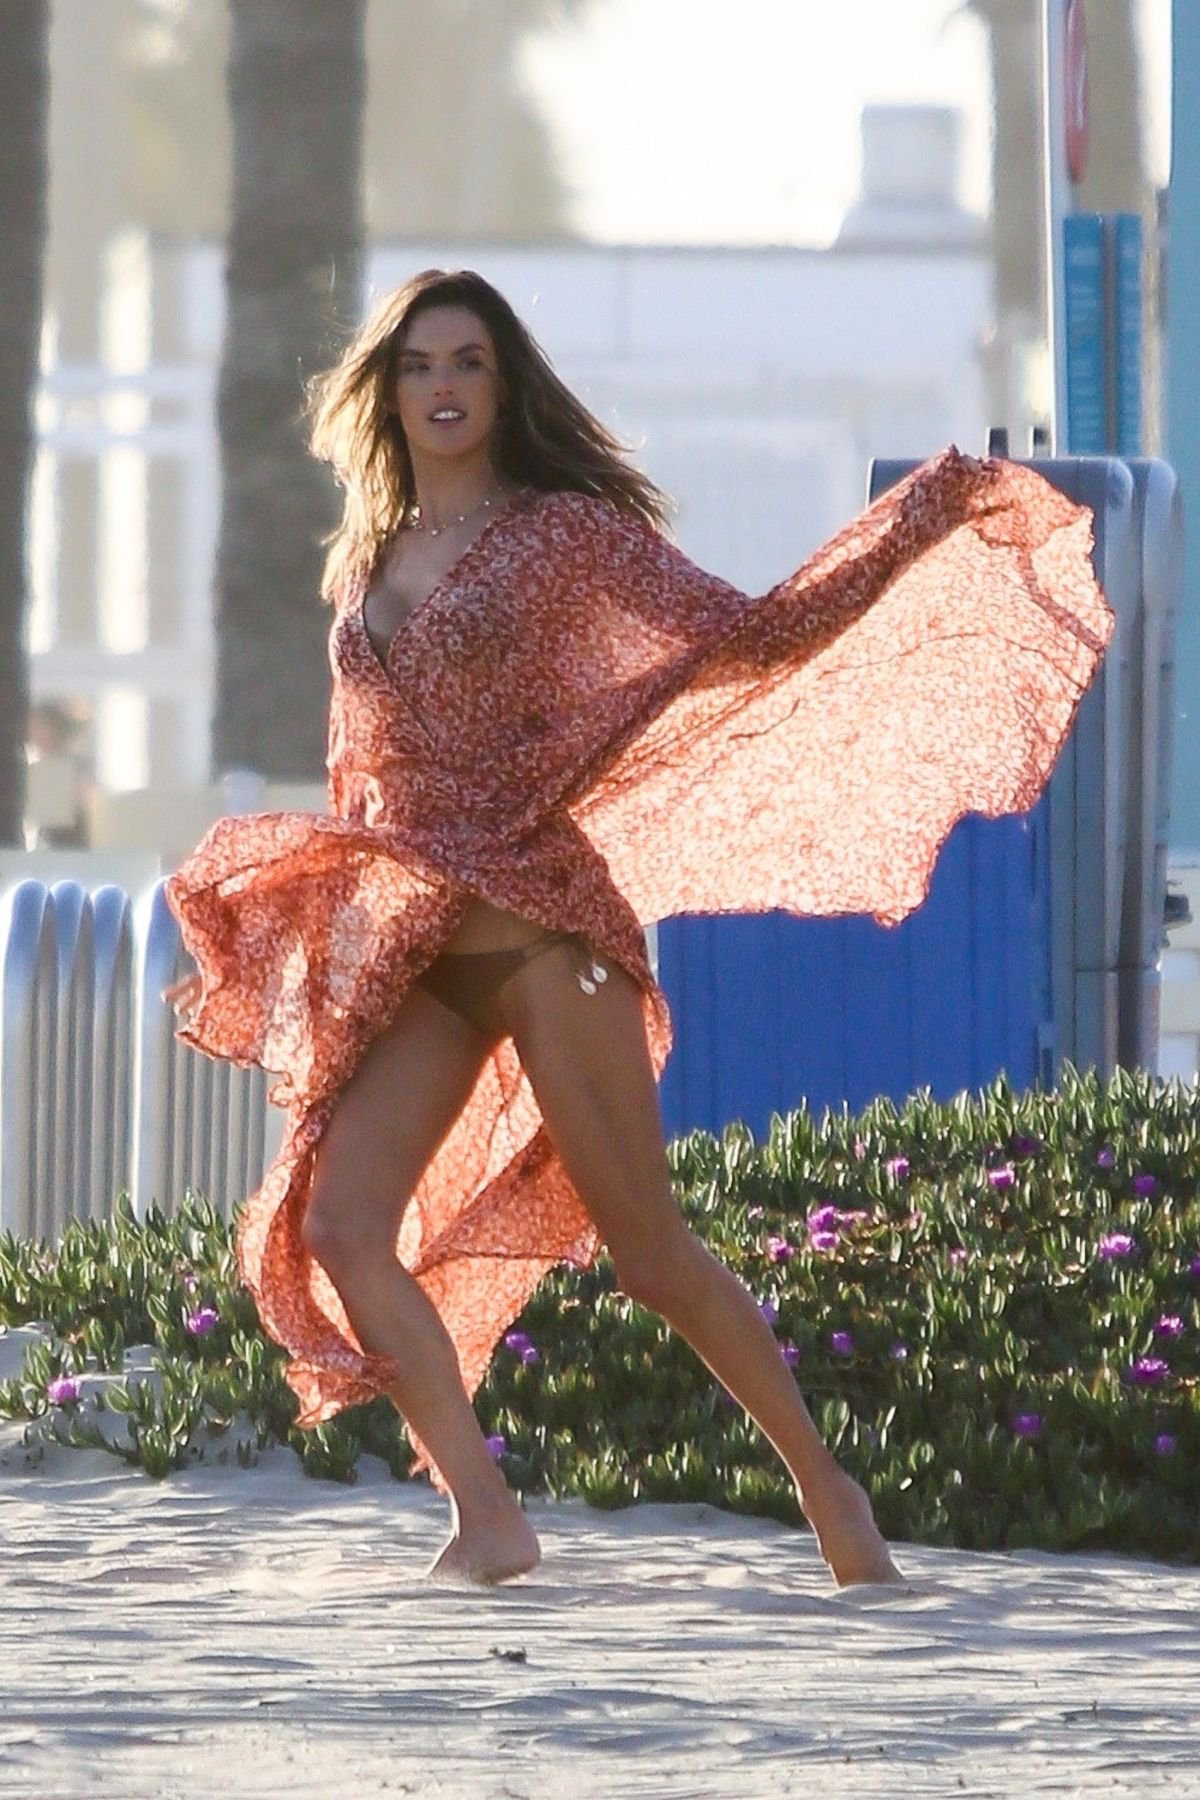 Alessandra Ambrosio Hot Bikini Photoshoot